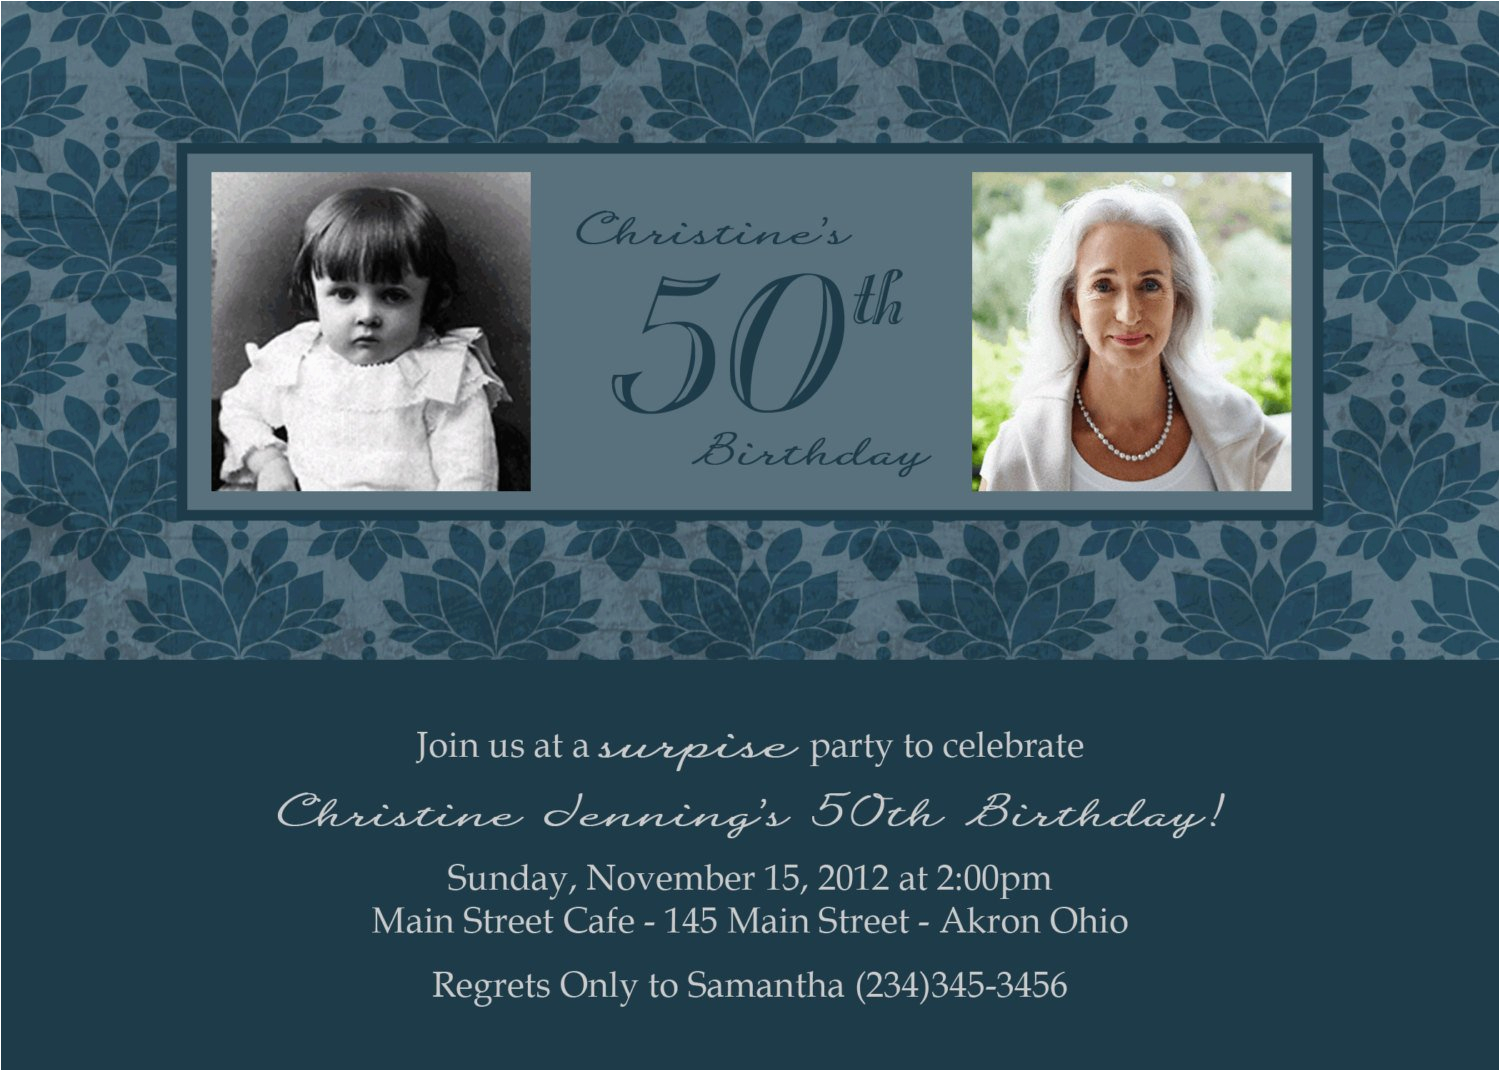 Personalized Birthday Invitations For Adults Adult Photo Custom Design